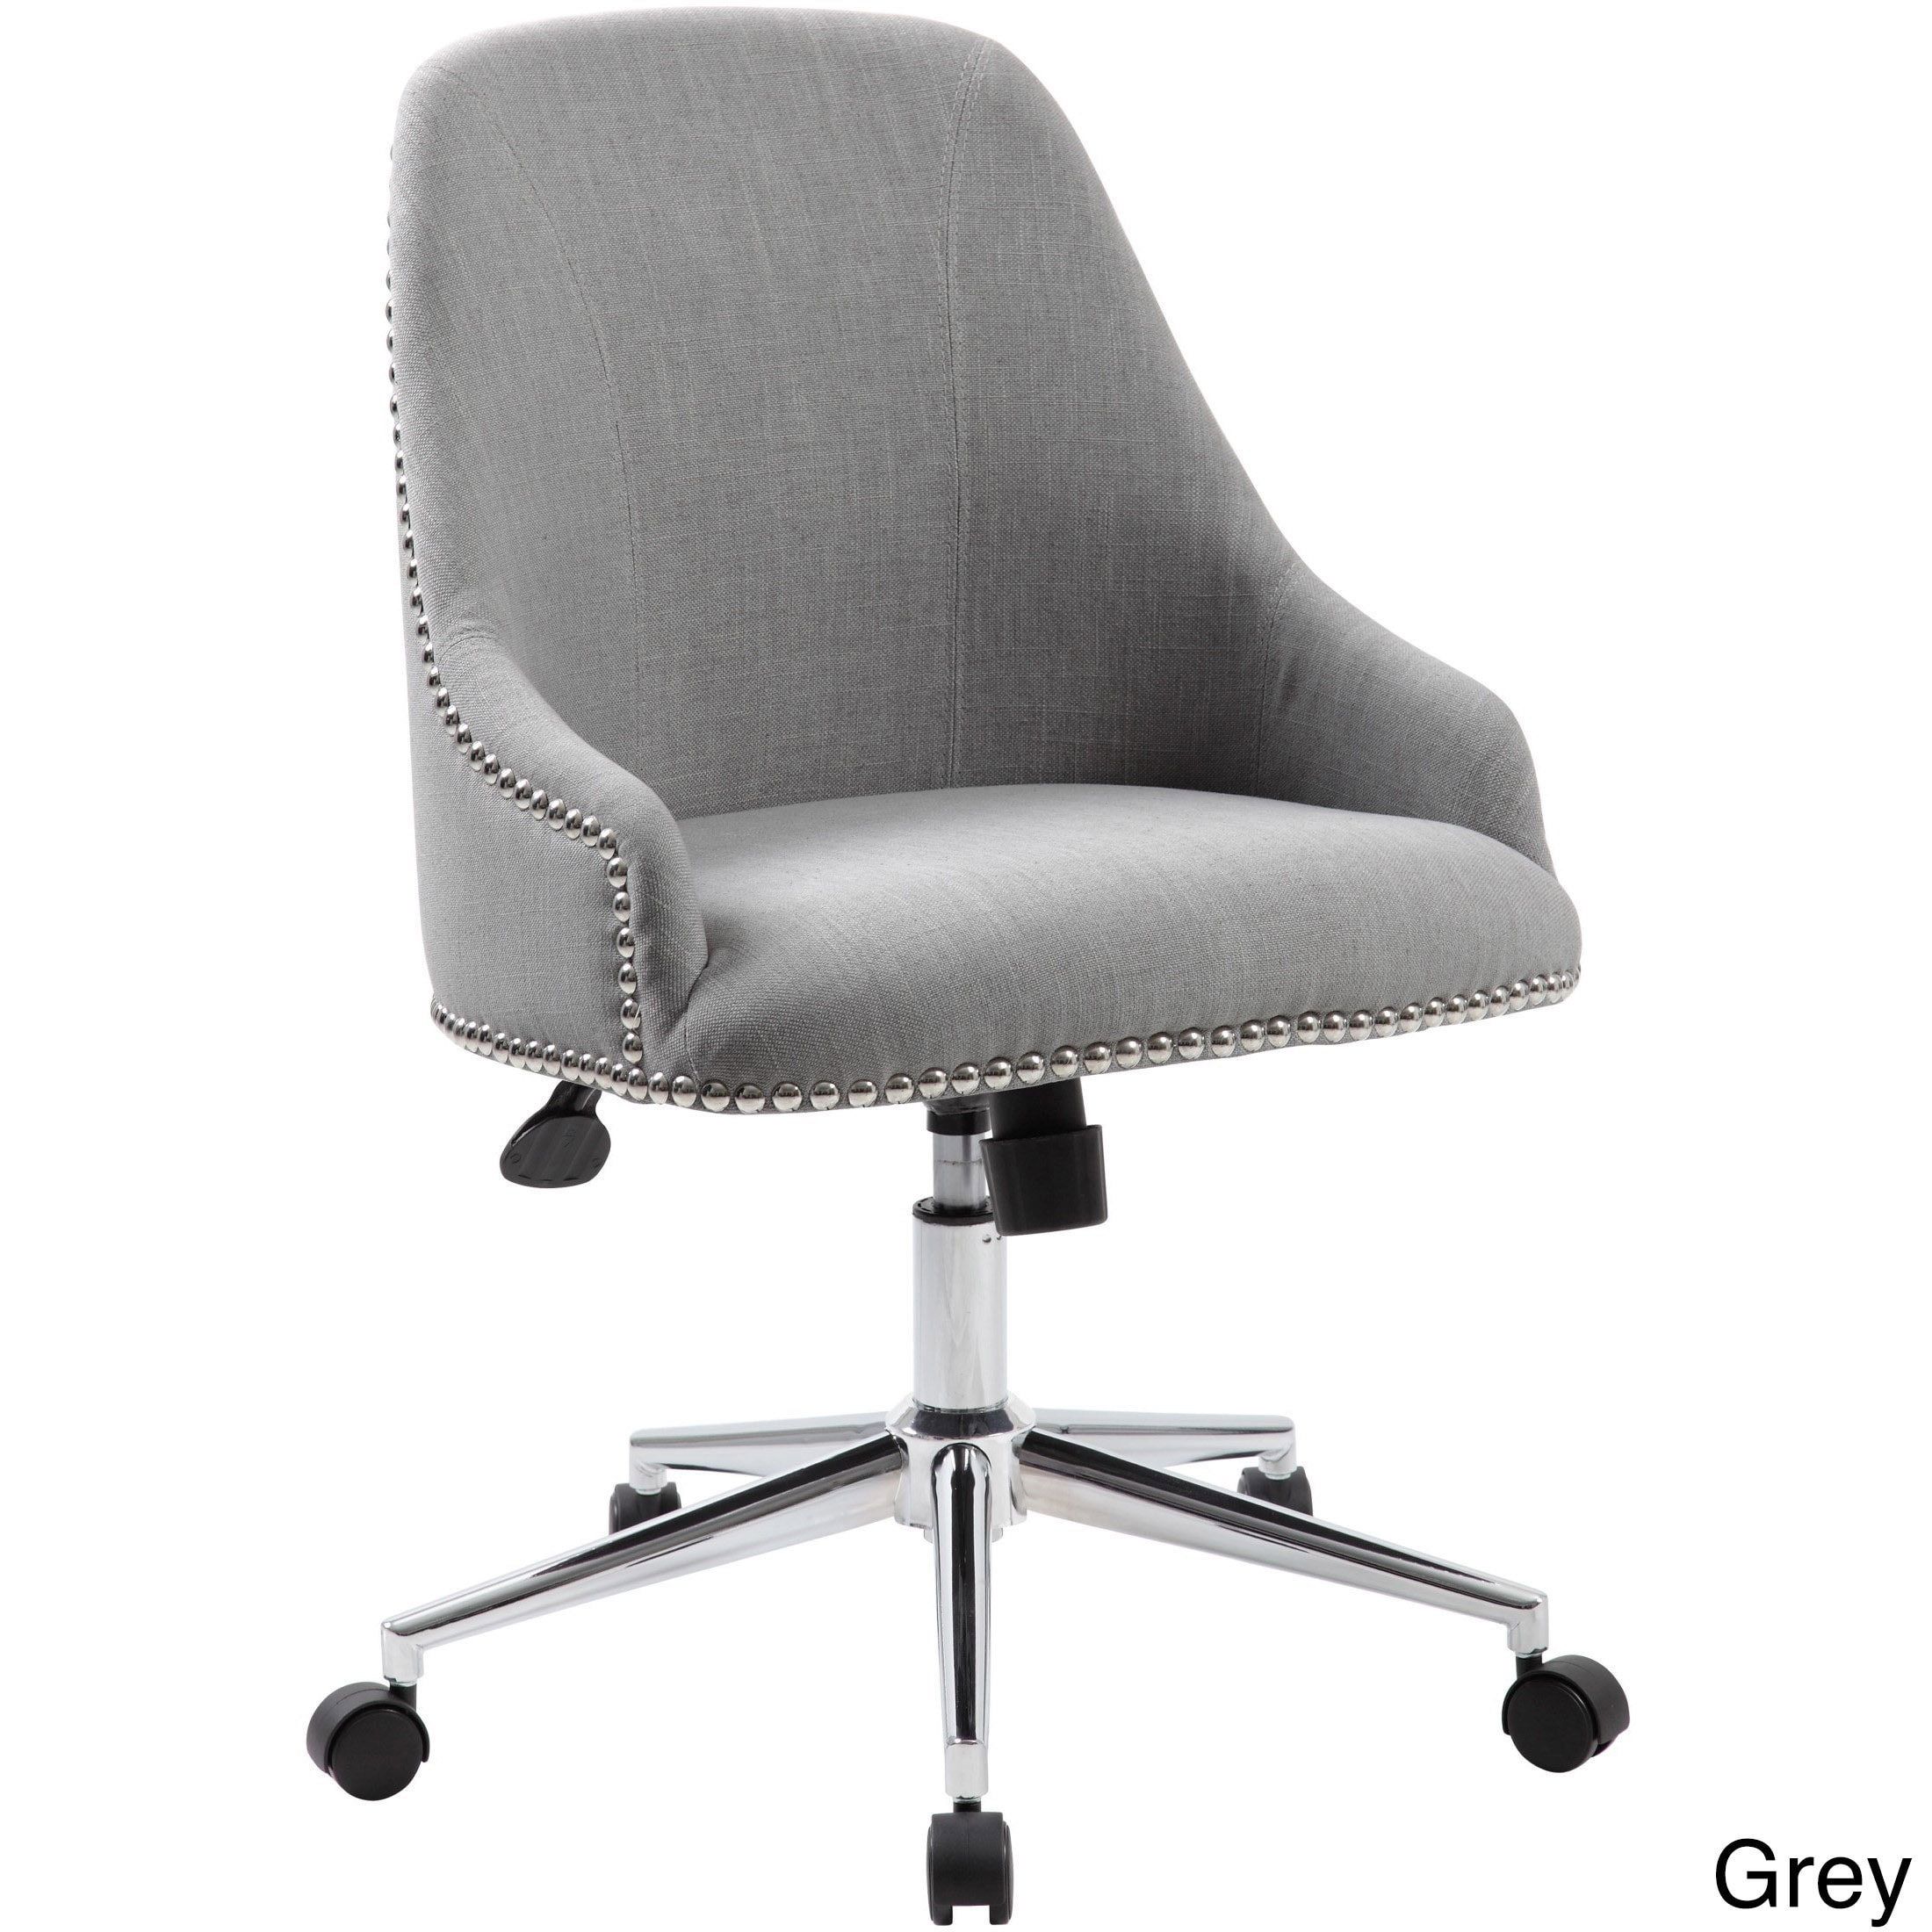 Grey Desk Chair Boss Carnegie Desk Chair